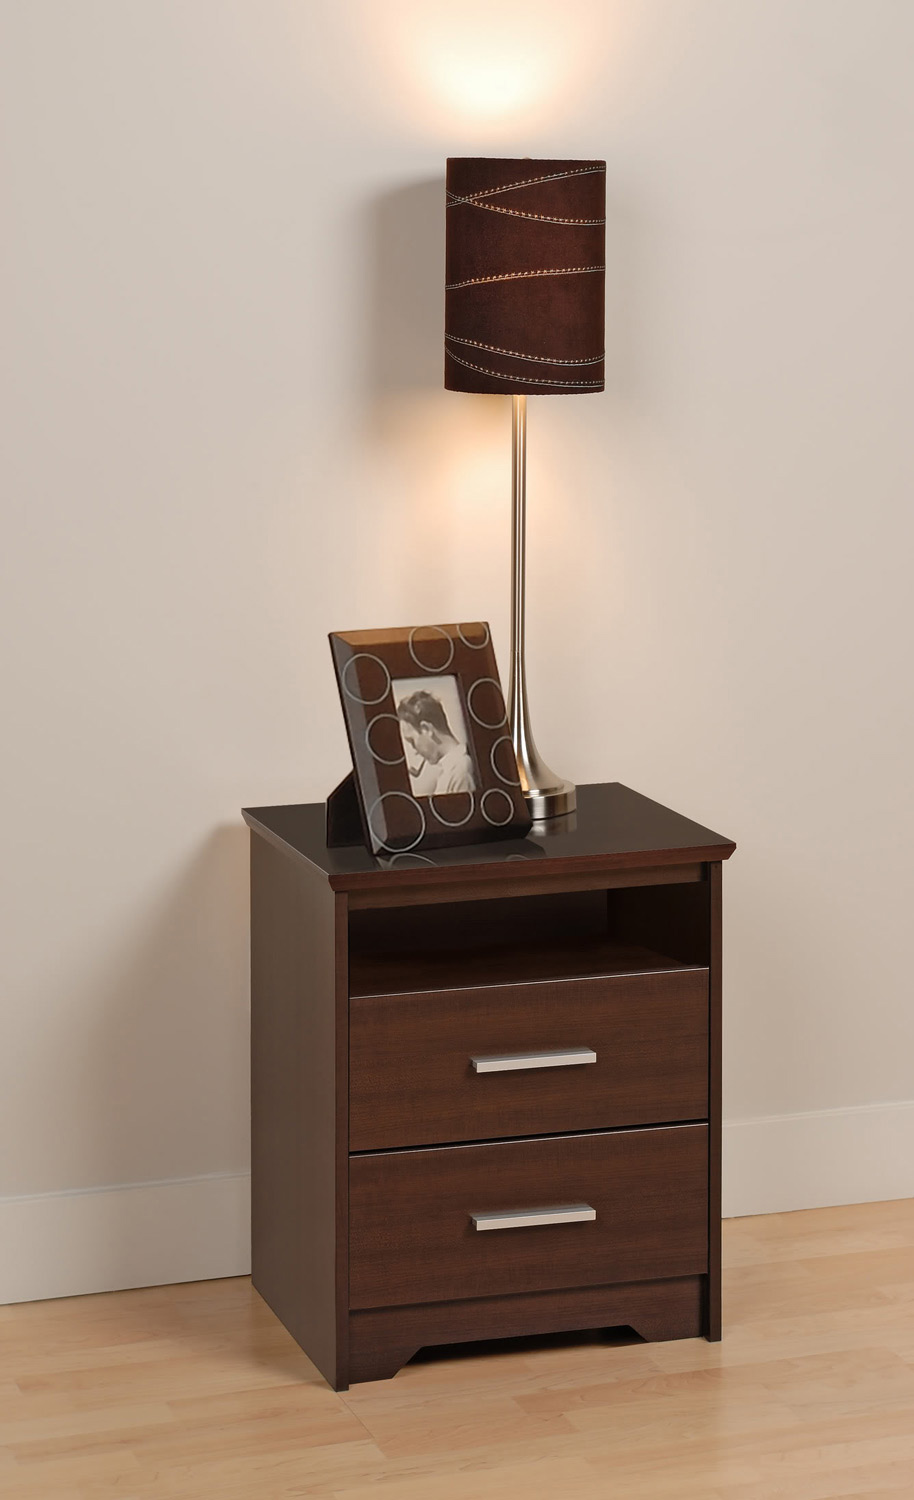 Prepac Coal Harbor 2 Drawer Tall Night Stand with Open Shelf - Espresso